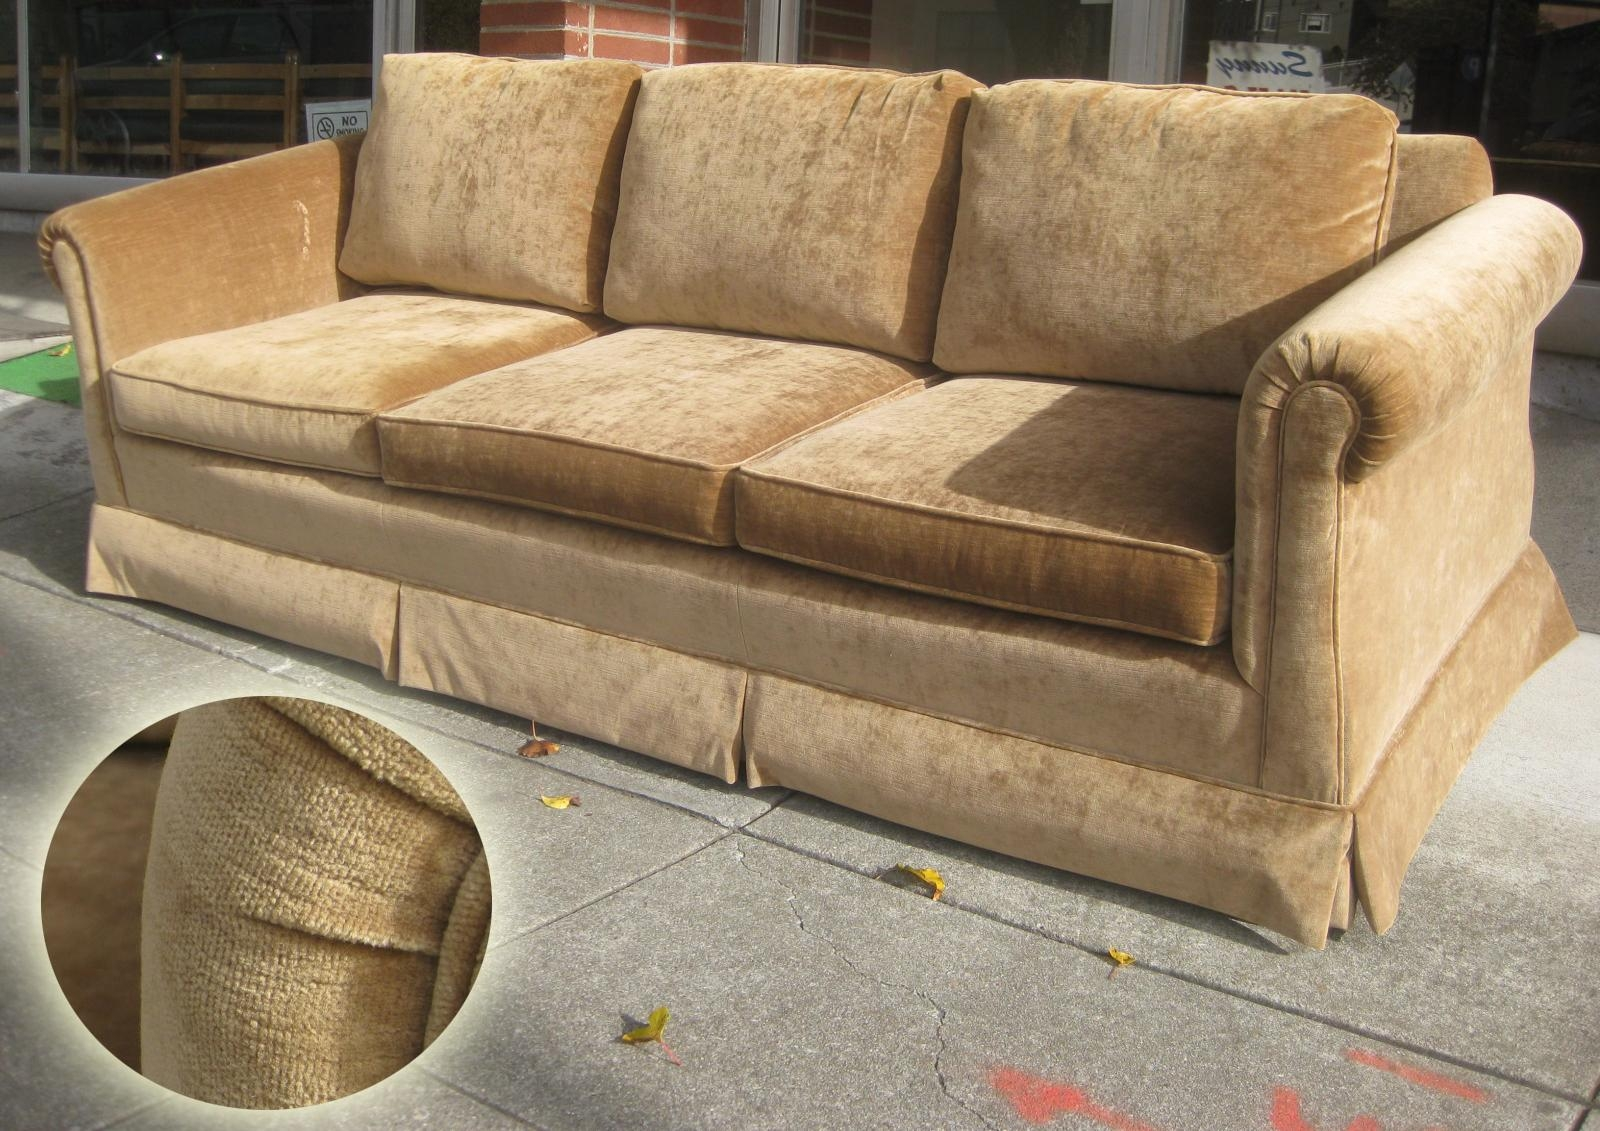 Uhuru Furniture & Collectibles: Sold - Brown Velvet Sofa And Chair for Brown Velvet Sofas